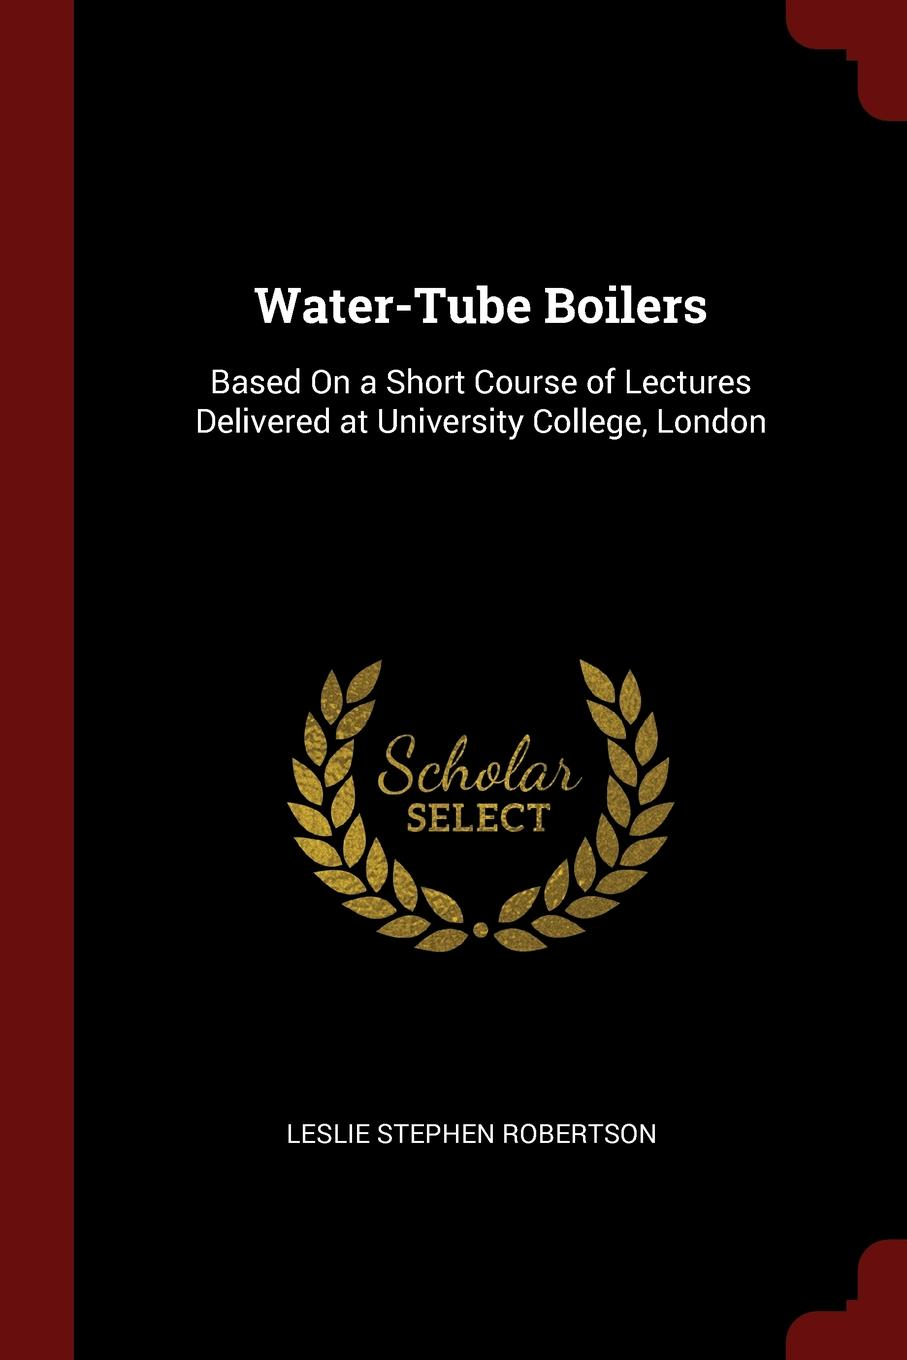 Water-Tube Boilers. Based On a Short Course of Lectures Delivered at University College, London